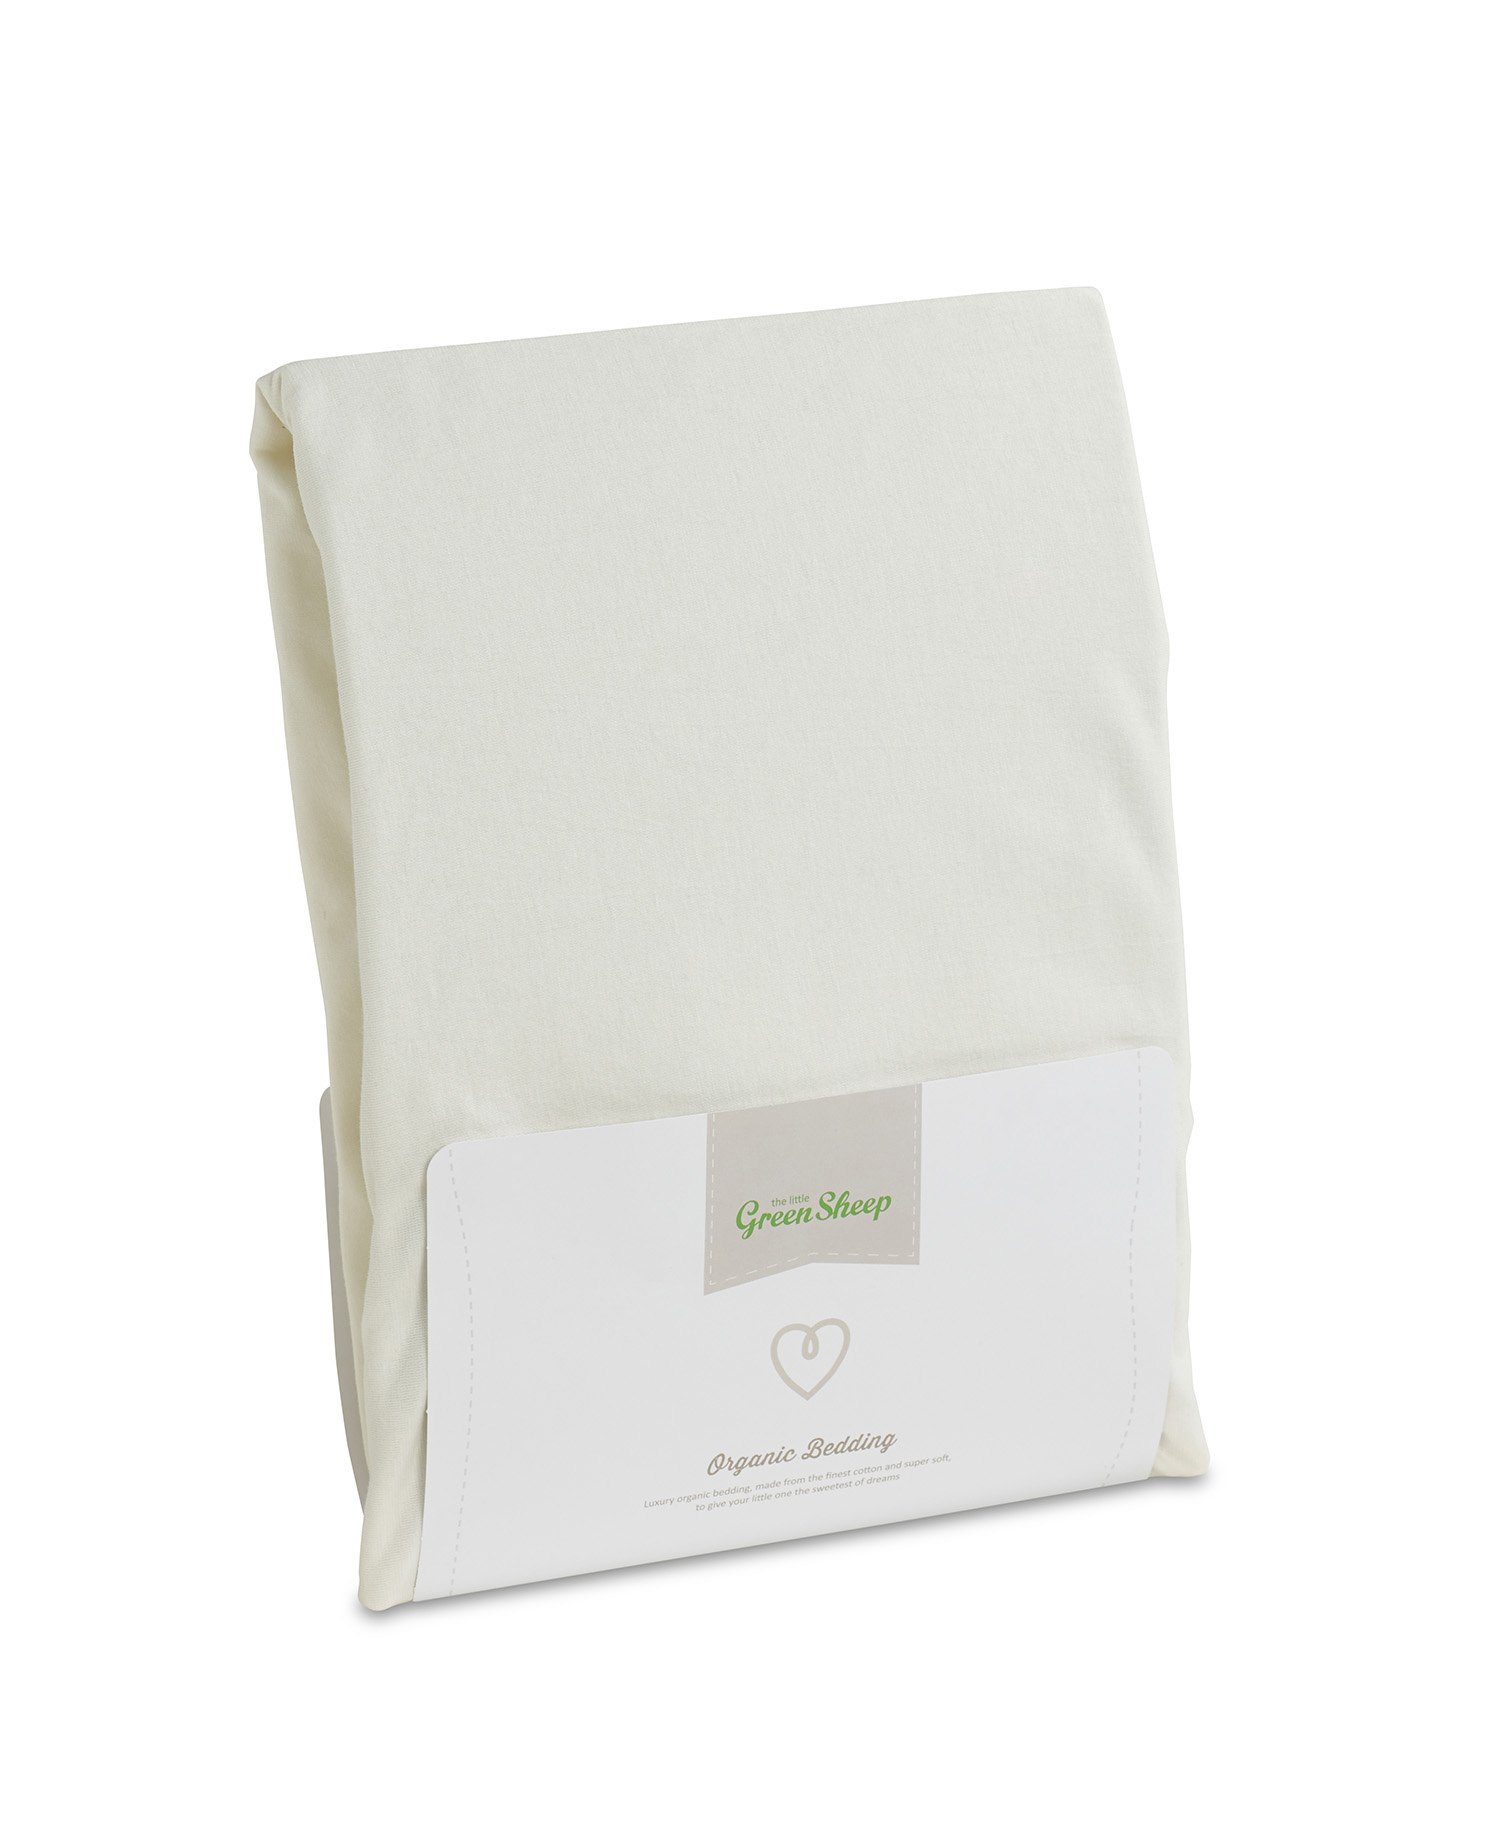 The Little Green Sheep Organic Cotton Junior Single Bed Fitted Sheet